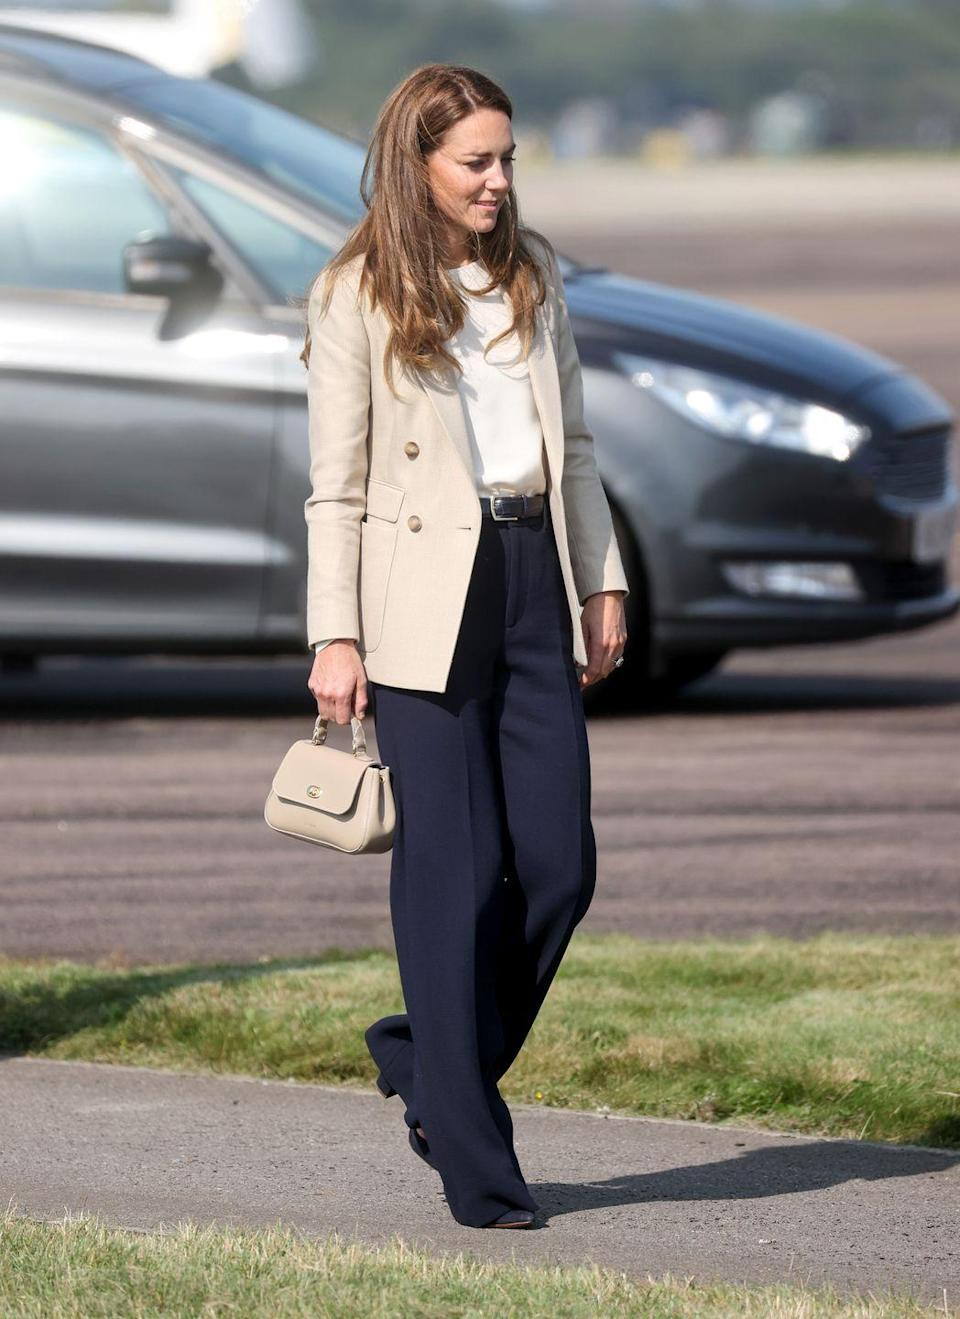 """<p>The Duchess of Cambridge returned to royal duties after her summer break and she did so sporting the perfect back-to-work outfit. While <a href=""""https://www.townandcountrymag.com/society/tradition/a37596711/kate-middleton-cream-blazer-navy-trousers-raf-visit-photos/"""" rel=""""nofollow noopener"""" target=""""_blank"""" data-ylk=""""slk:visiting a Royal Air Force military base"""" class=""""link rapid-noclick-resp"""">visiting a Royal Air Force military base</a>, she wore a <a href=""""https://go.redirectingat.com?id=74968X1596630&url=https%3A%2F%2Fwww.reiss.com%2Fp%2Fdouble-breasted-twill-blazer-womens-larsson-in-neutral-brown%2F&sref=https%3A%2F%2Fwww.townandcountrymag.com%2Fstyle%2Ffashion-trends%2Fnews%2Fg1633%2Fkate-middleton-fashion%2F"""" rel=""""nofollow noopener"""" target=""""_blank"""" data-ylk=""""slk:neutral Reiss blazer"""" class=""""link rapid-noclick-resp"""">neutral Reiss blazer</a> and wide leg navy trousers. </p>"""